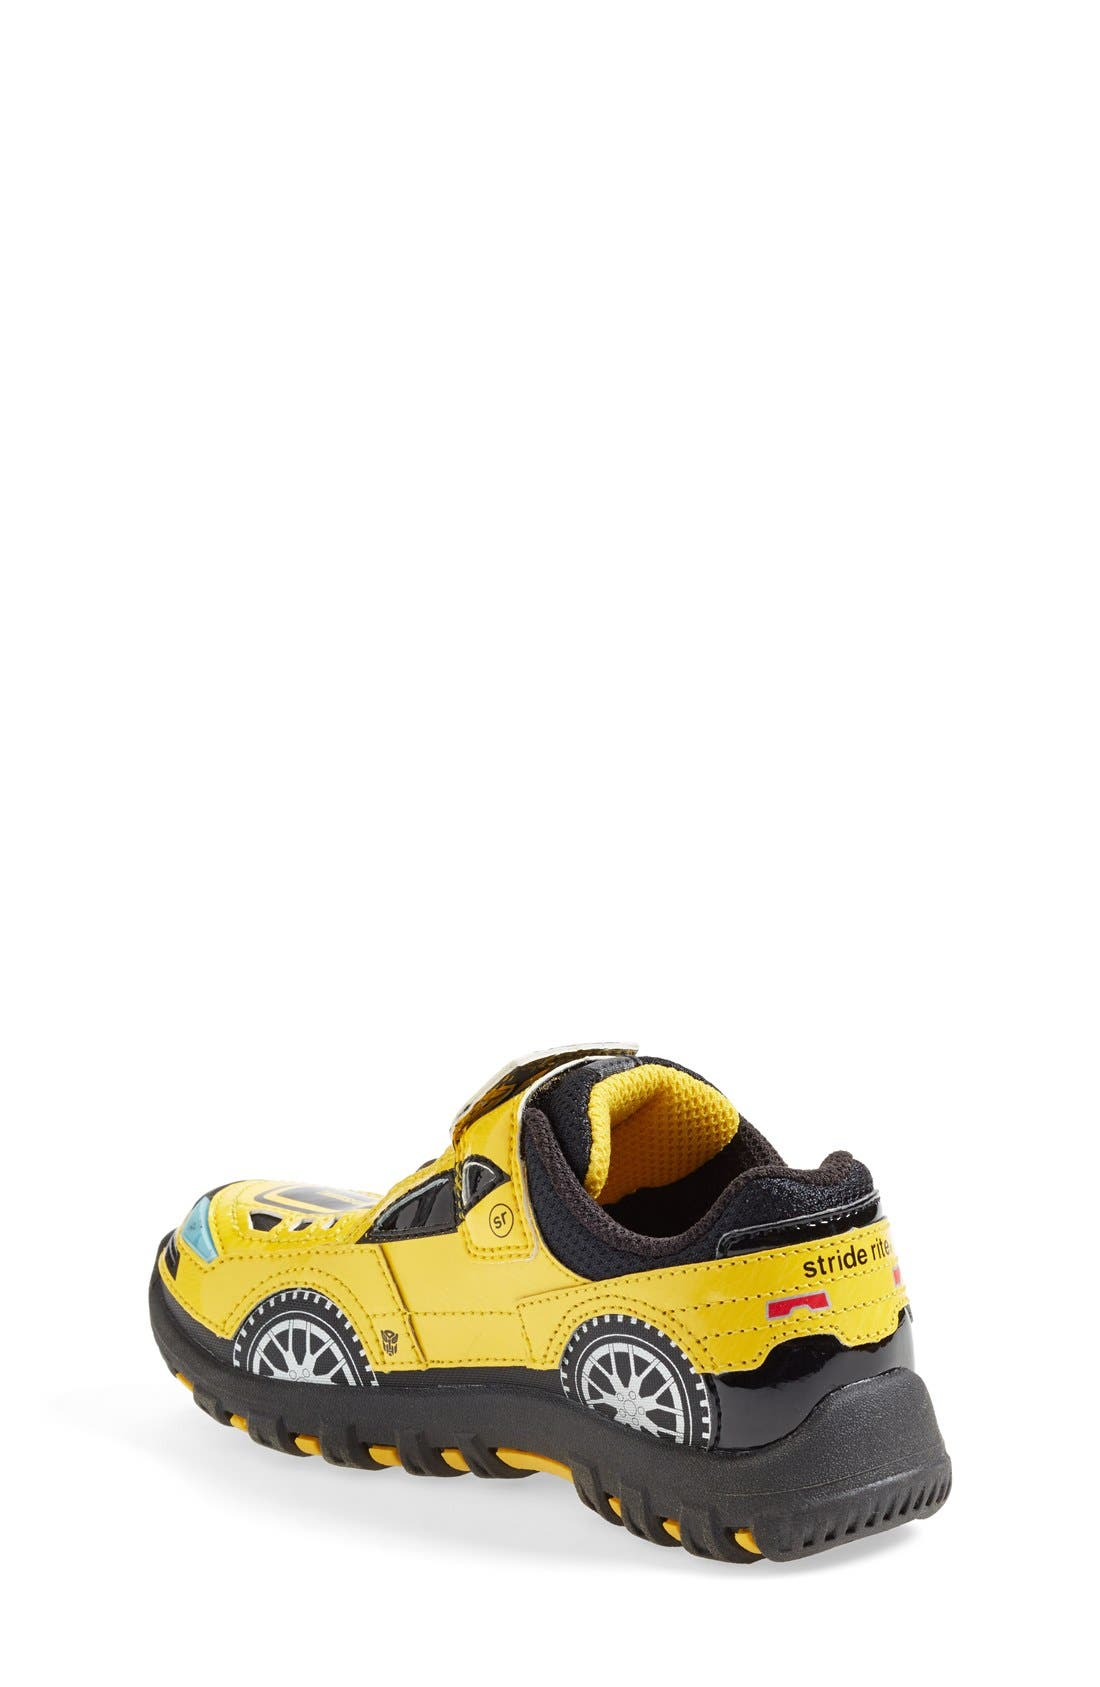 Alternate Image 2  - Stride Rite 'Bumblebee™' Light-Up Sneaker (Online Only) (Walker, Toddler & Little Kid)